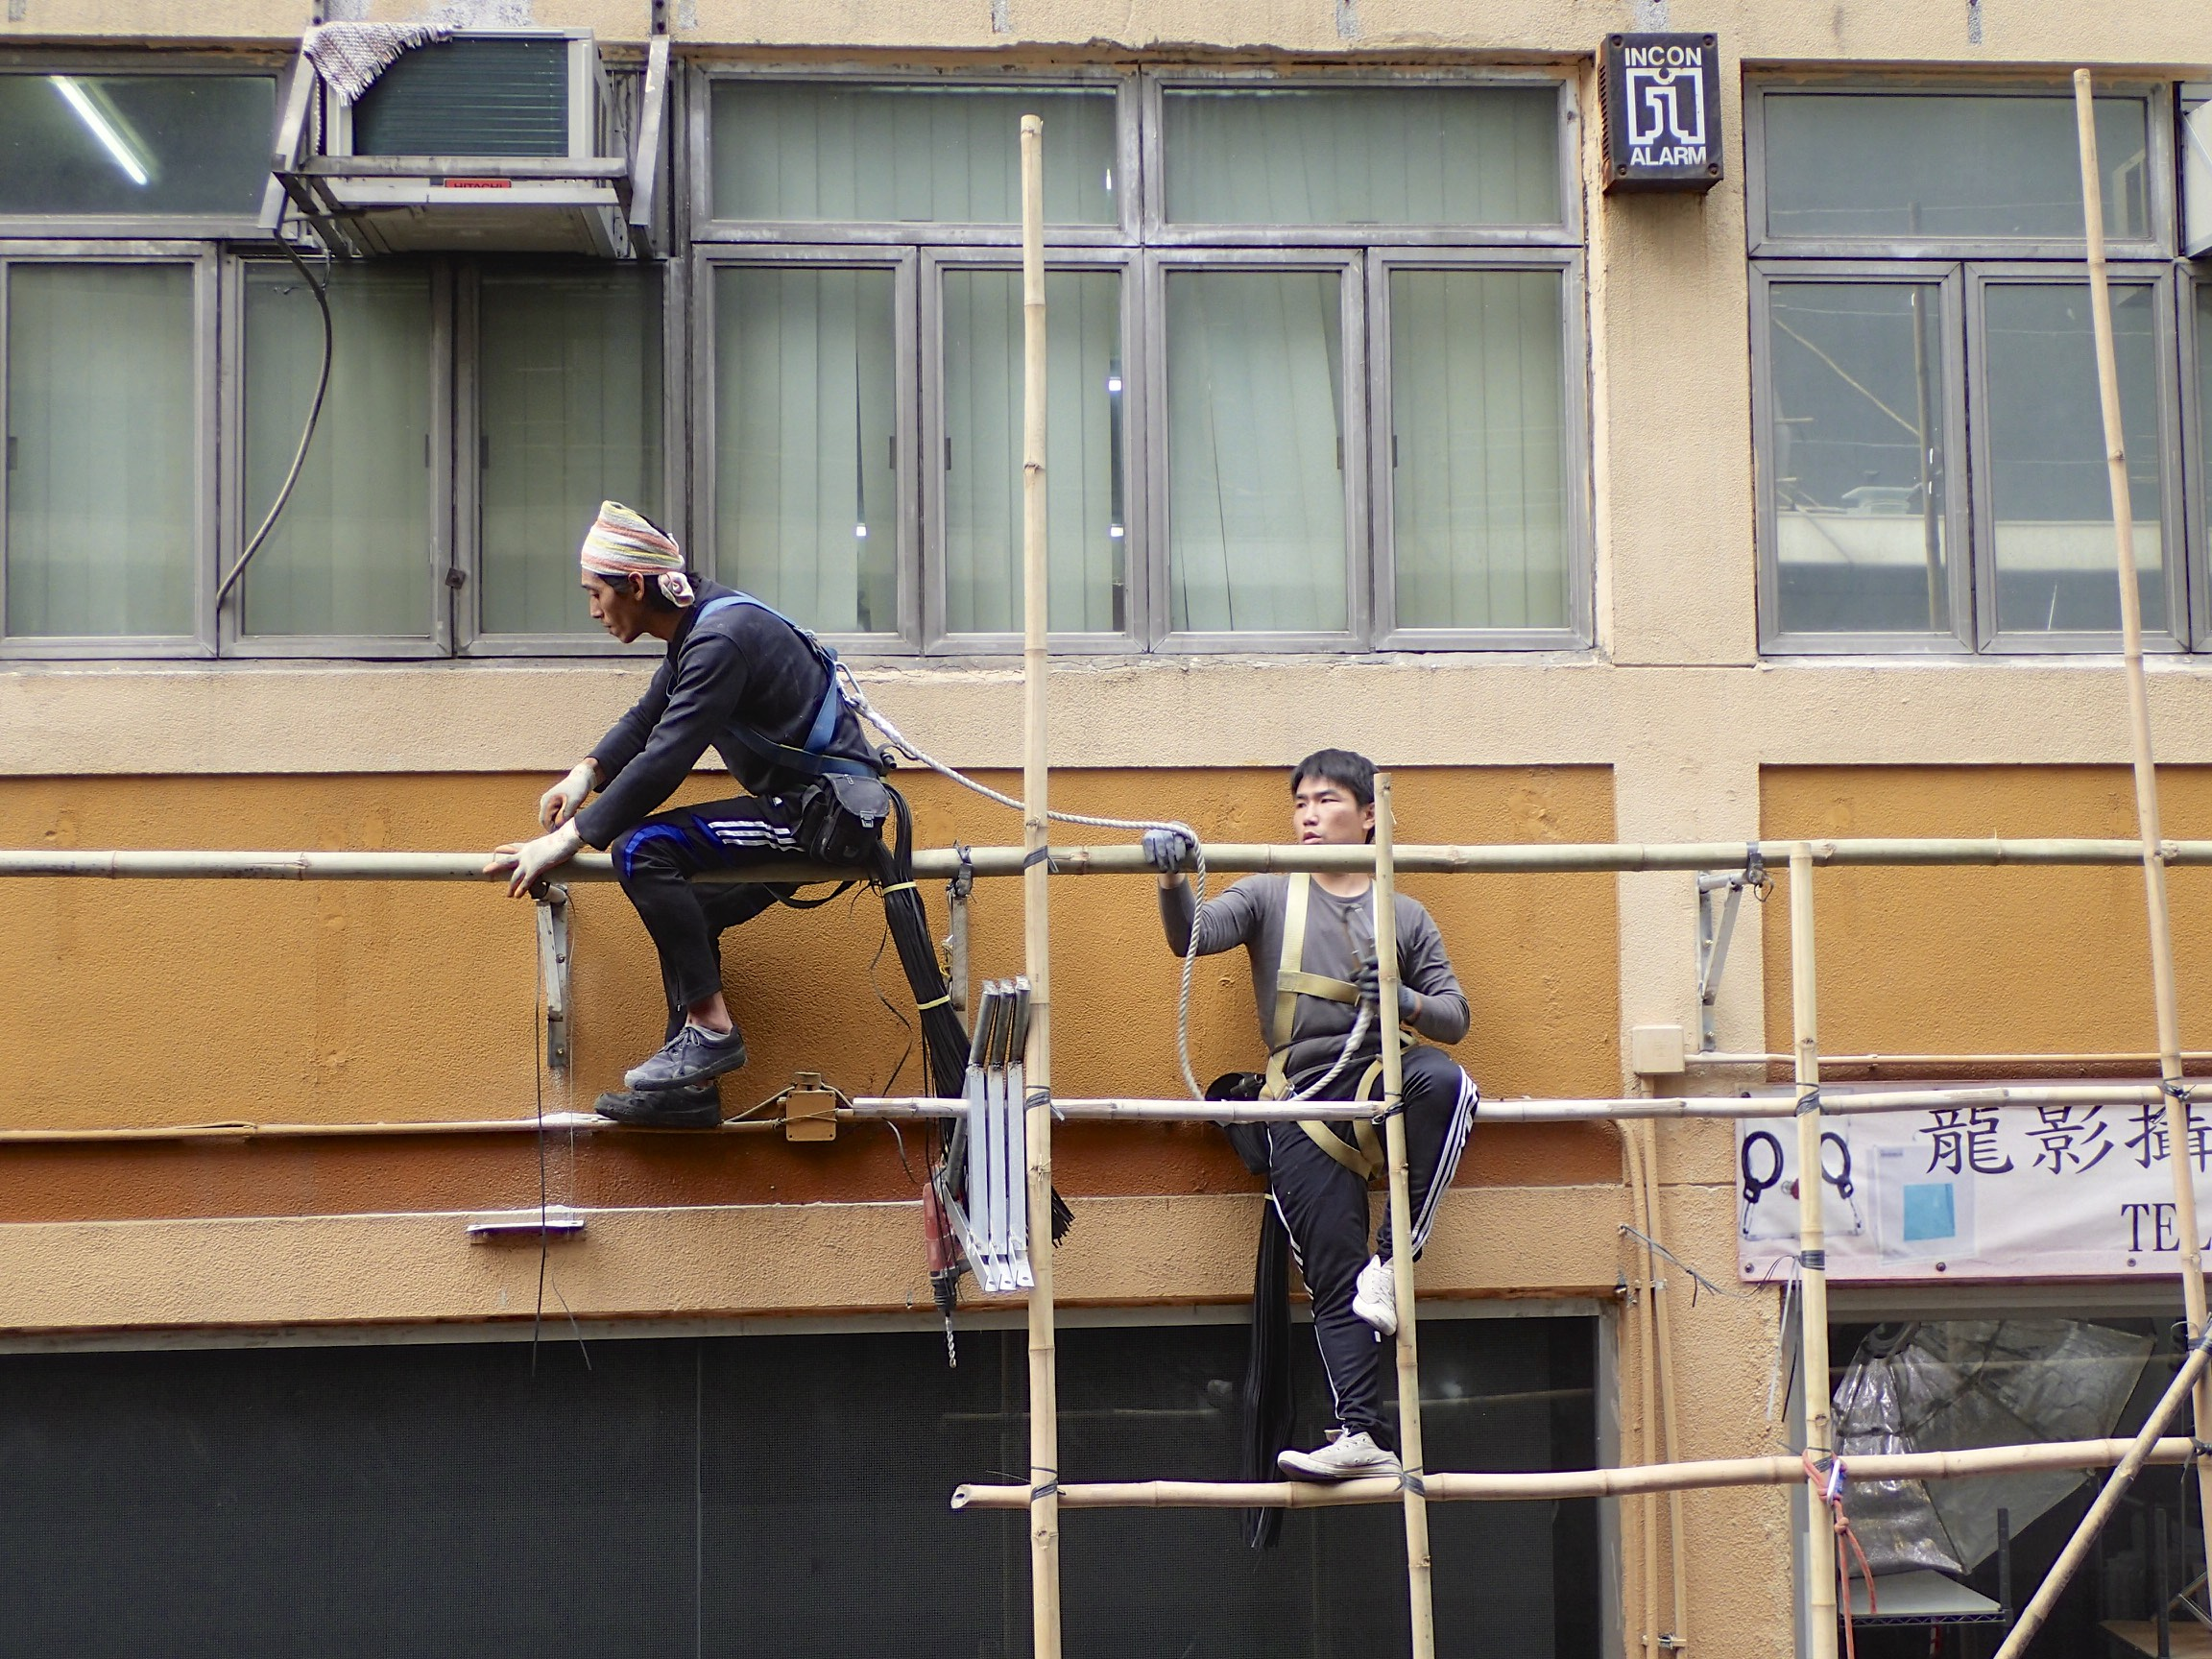 Construction workers in Wanchai.I love the practical spirit in Hong Kong. Though this one looks a bit unstable, it is perfectly save. Perhaps.